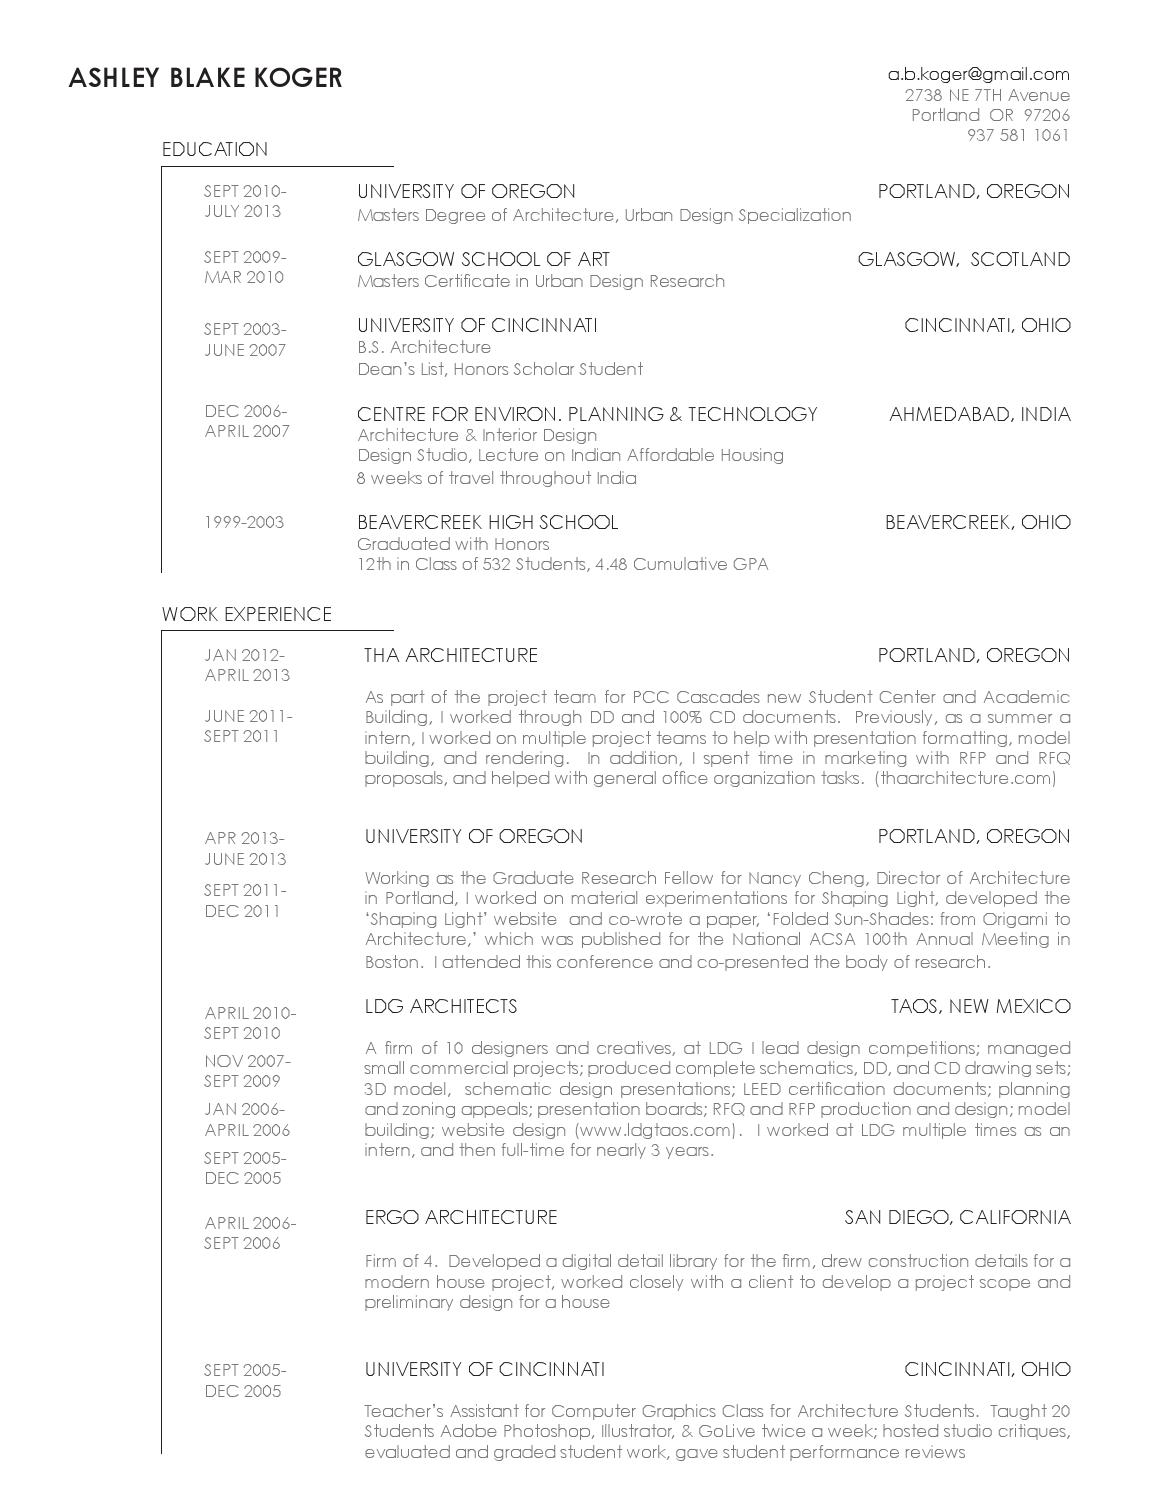 How To List Degree Specialization On Resume